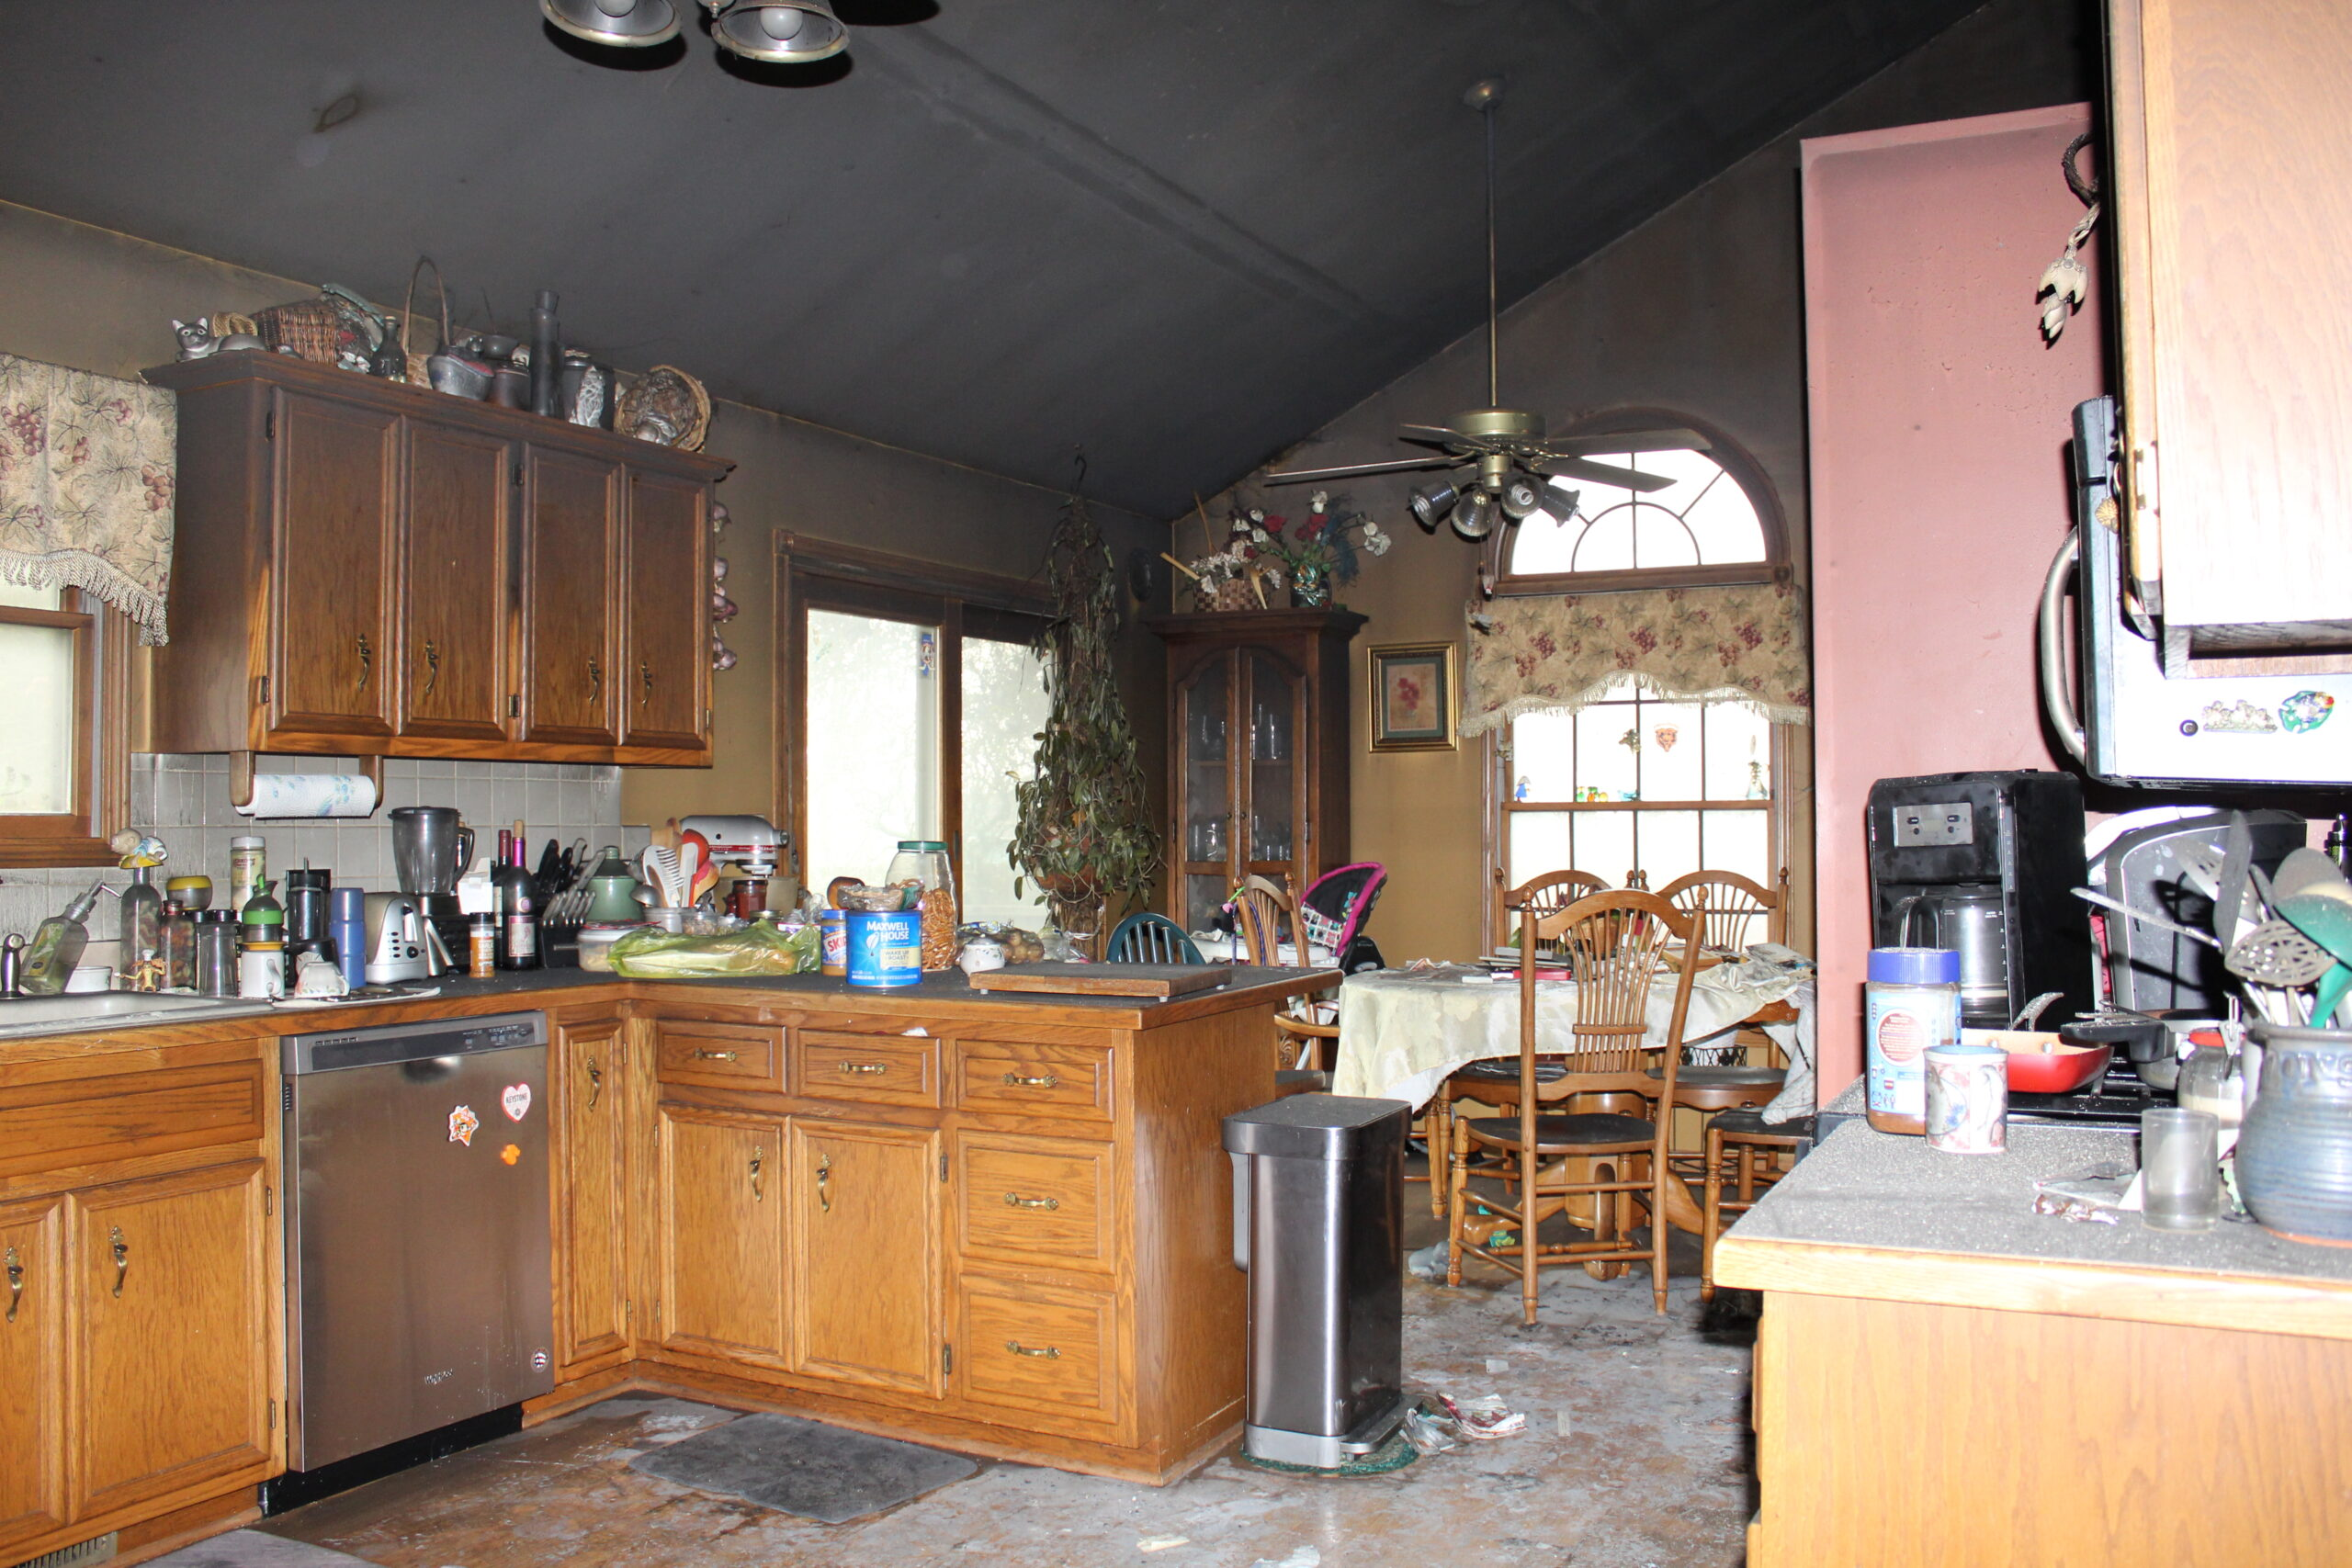 kitchen before fire restoration